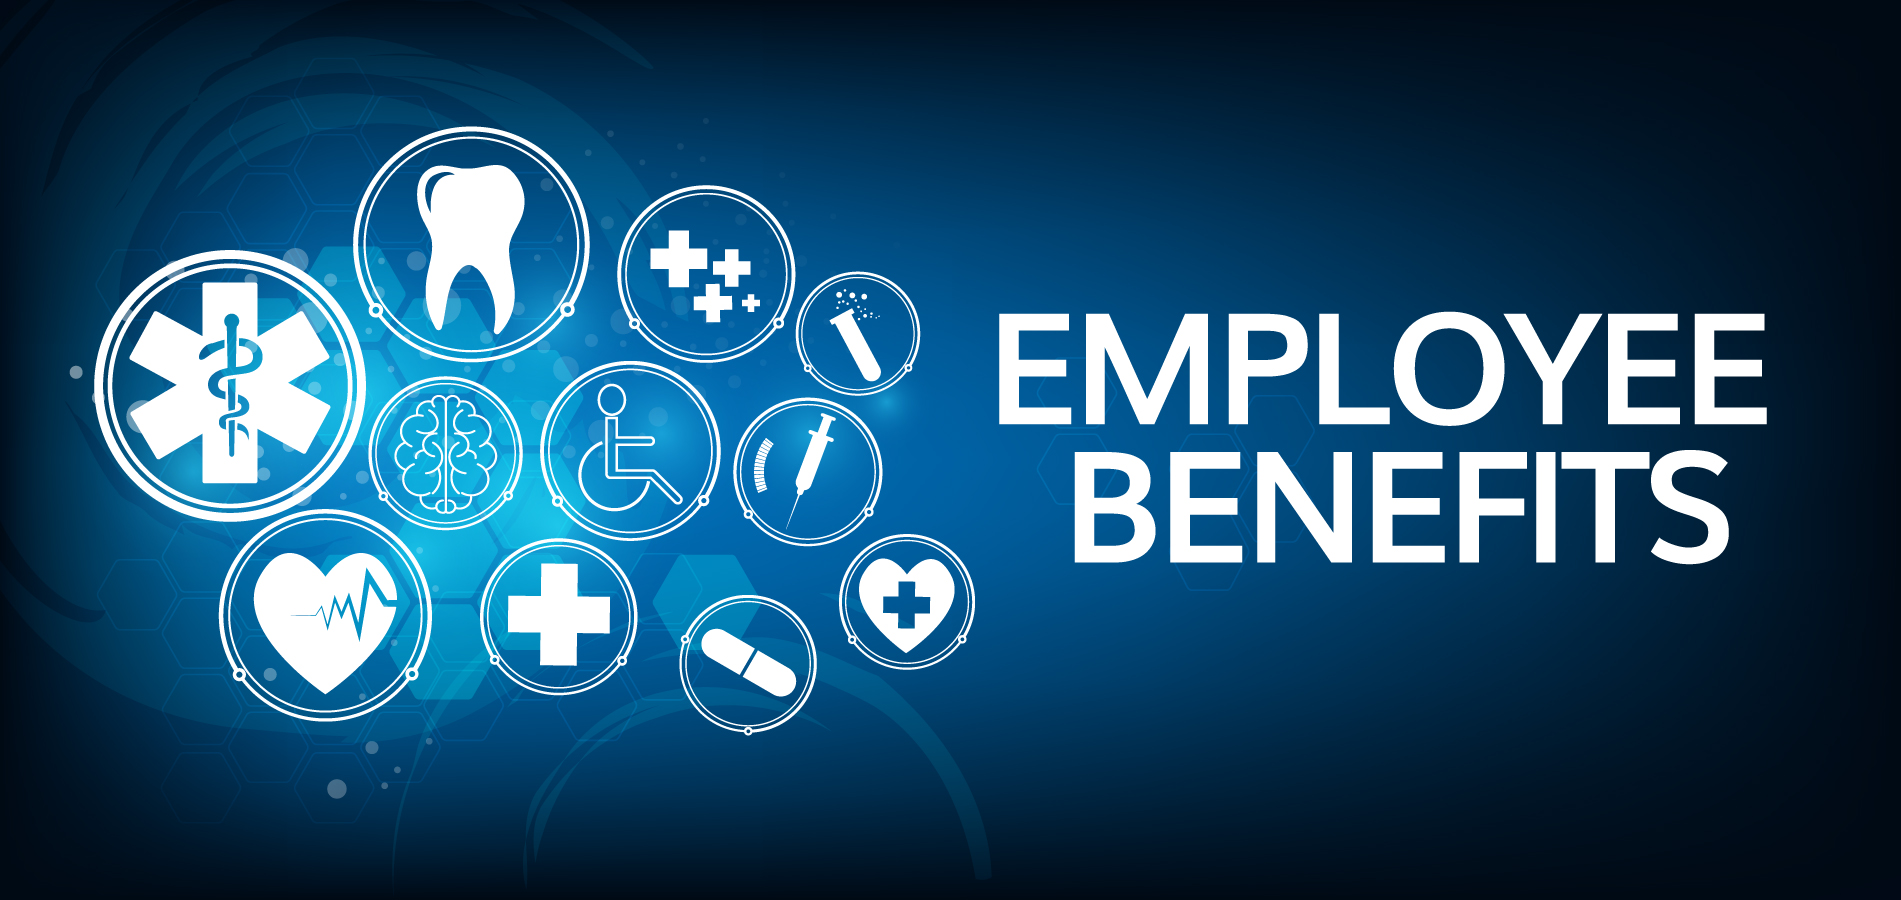 Health and dental coverage for employee benefits